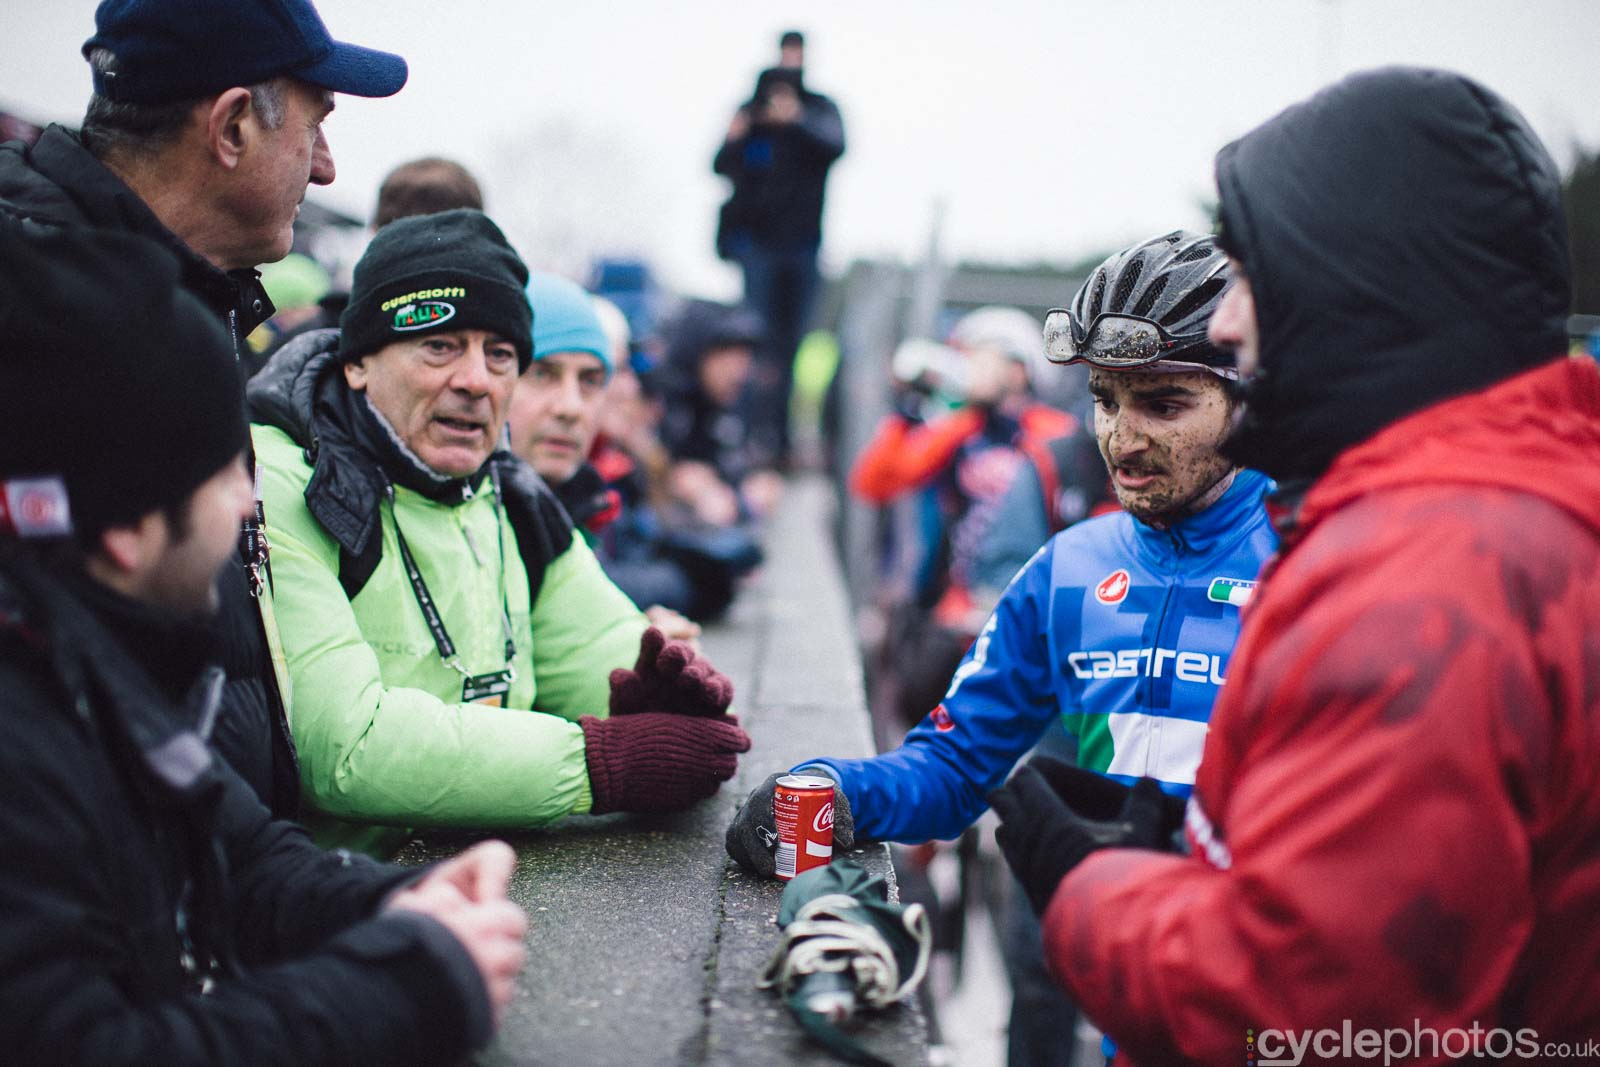 2016-cyclephotos-cyclocross-world-championships-zolder-115804-gioele-bertolini